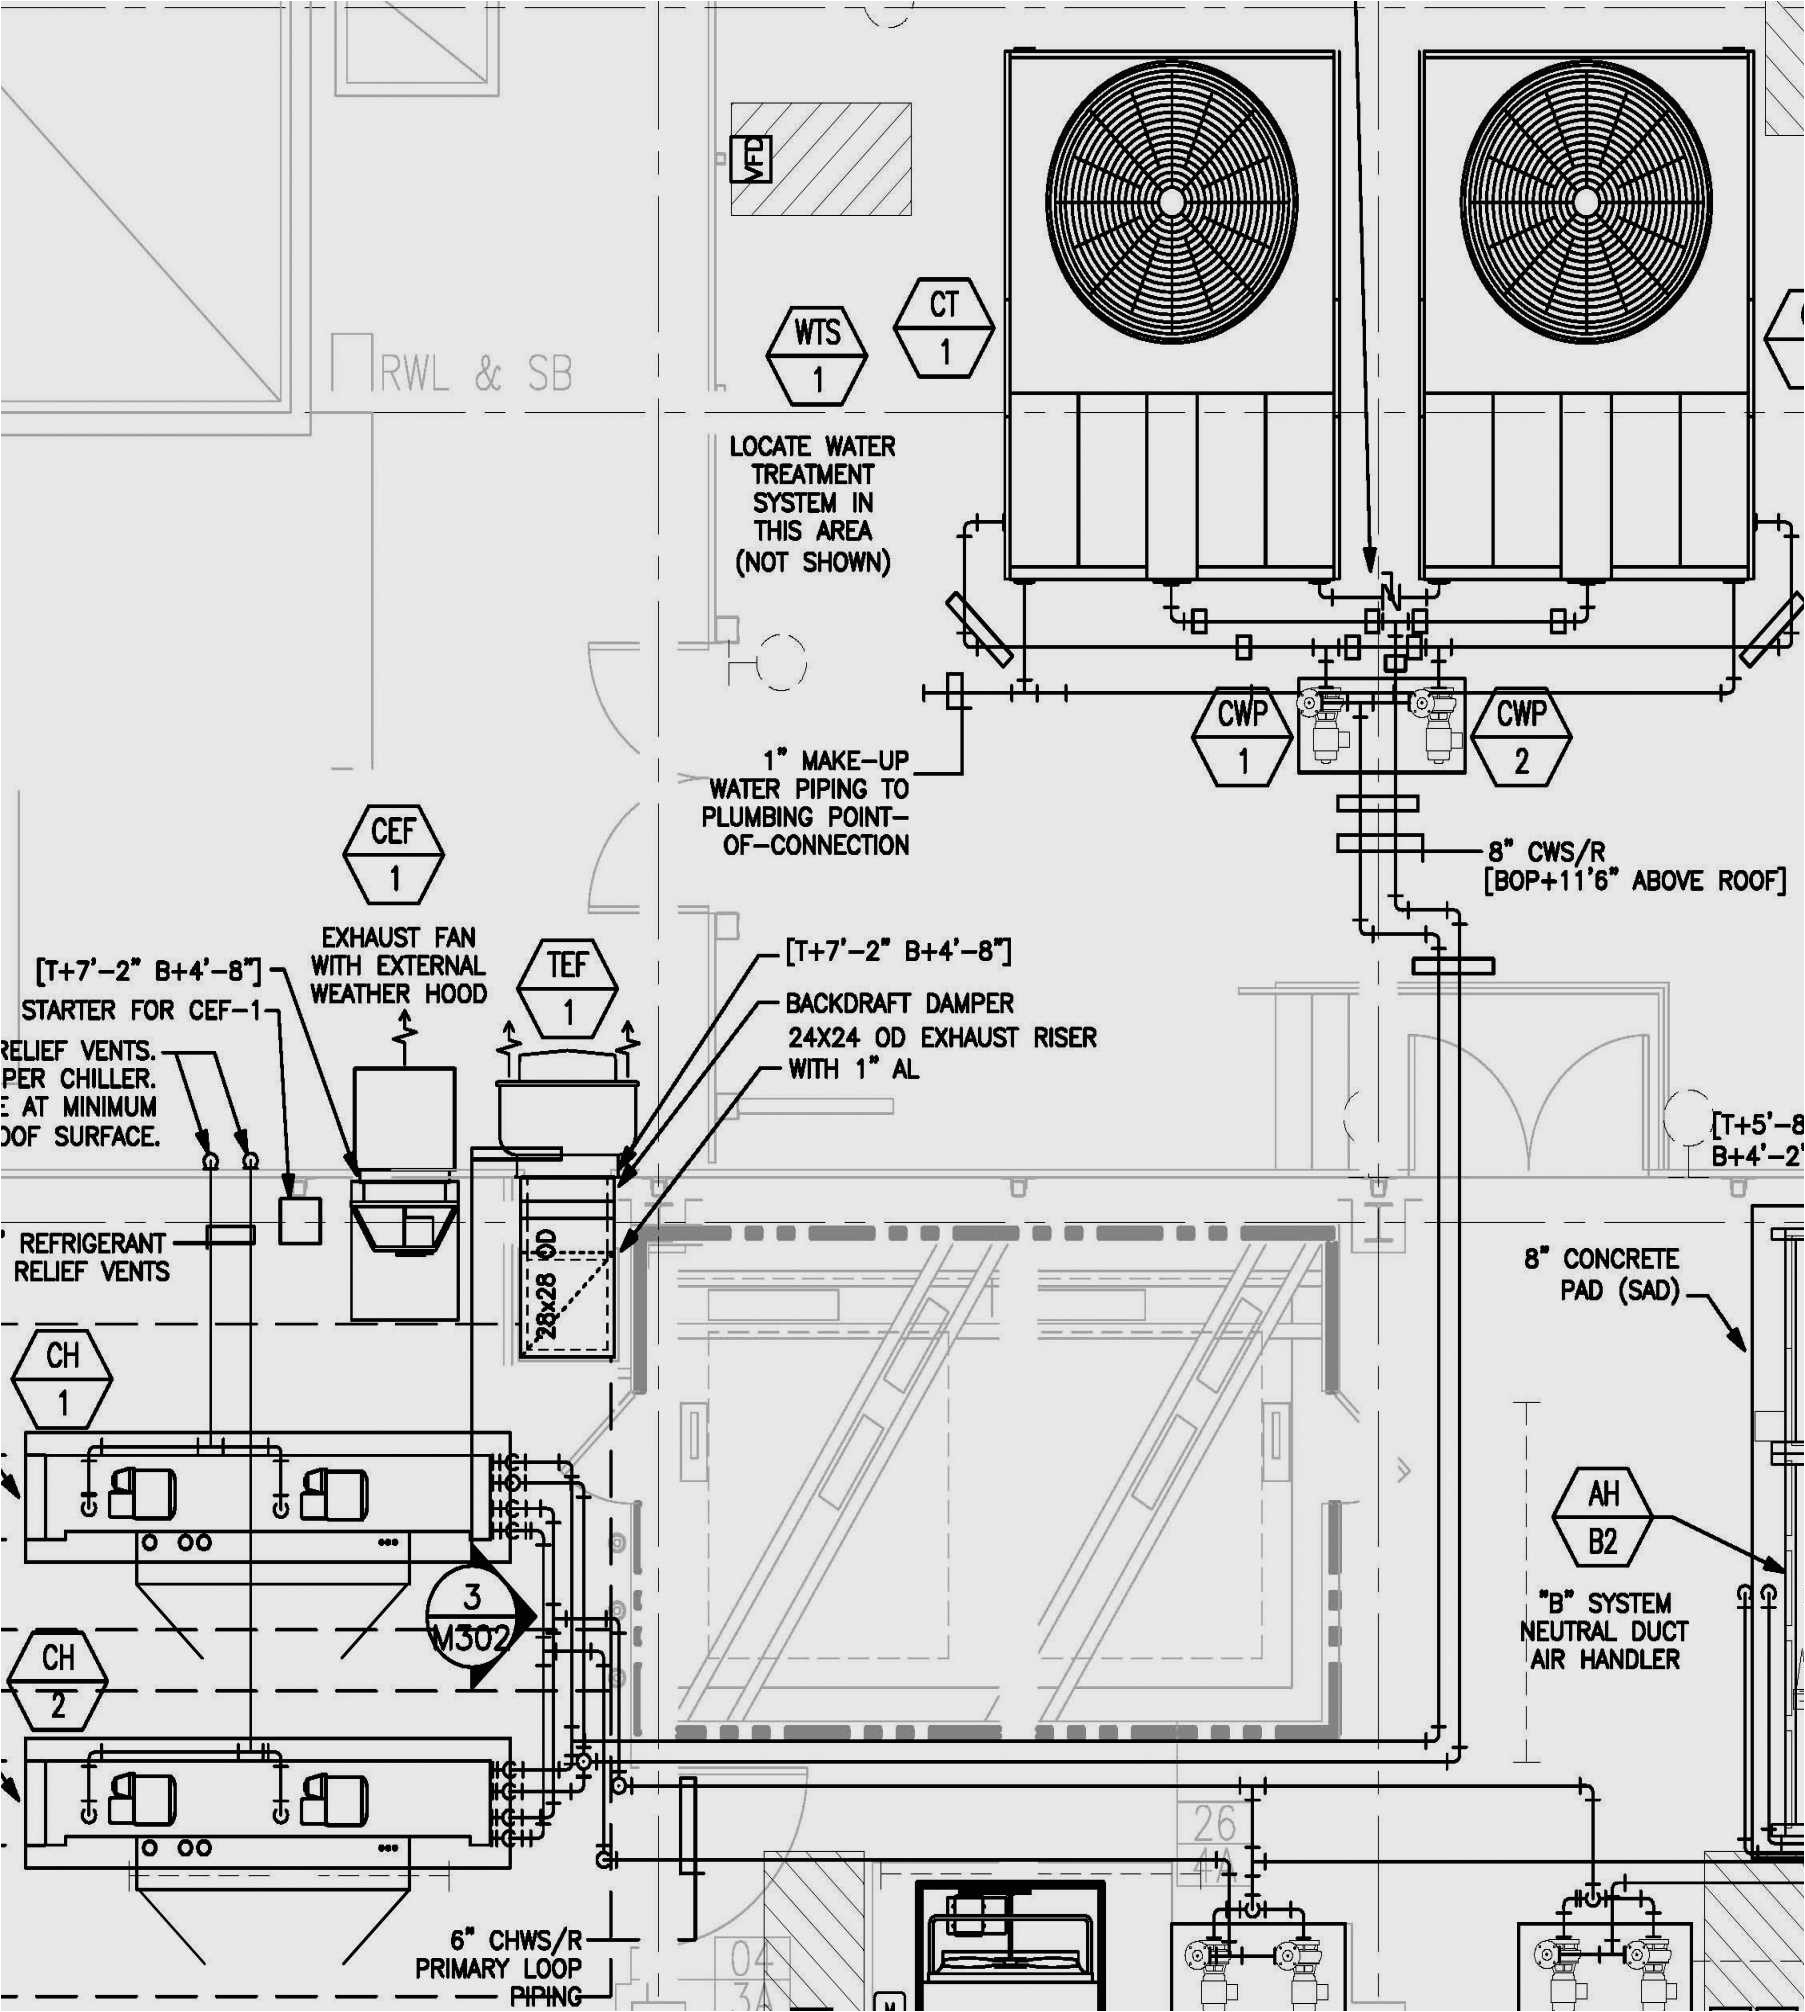 Carrier Infinity Thermostat Troubleshooting Manual